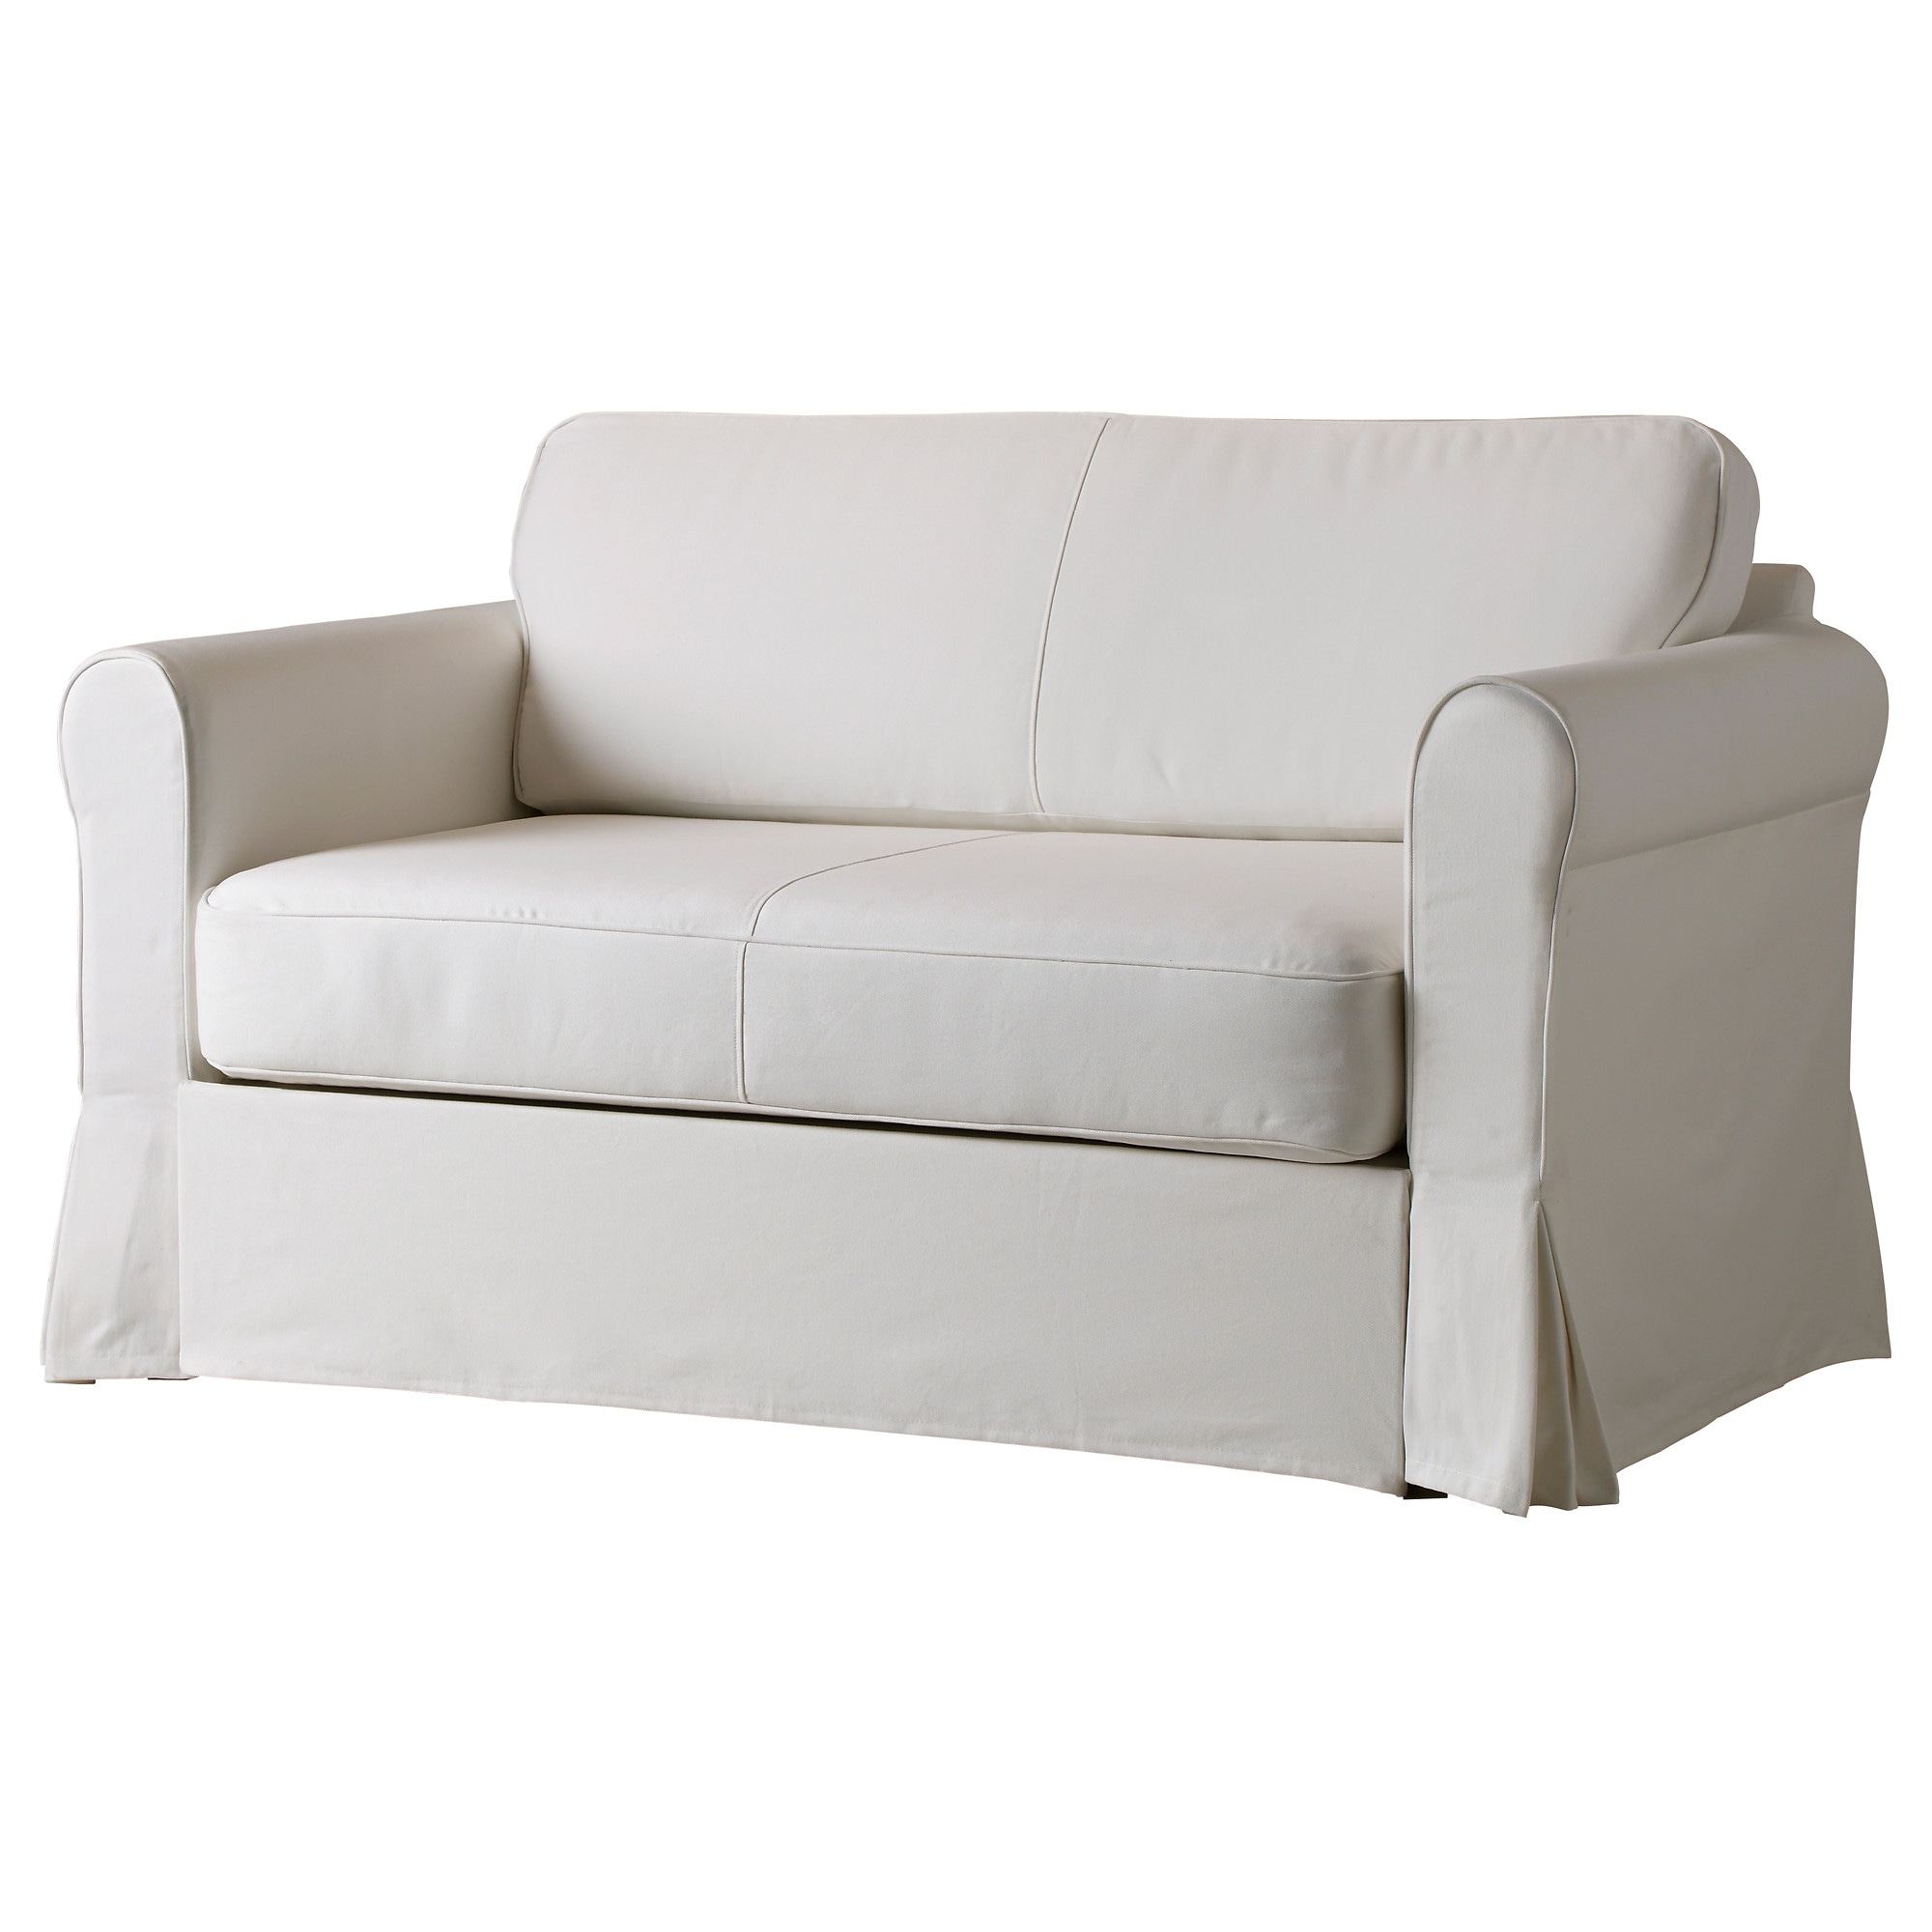 small sofa bed with storage hagalund sofa bed blekinge